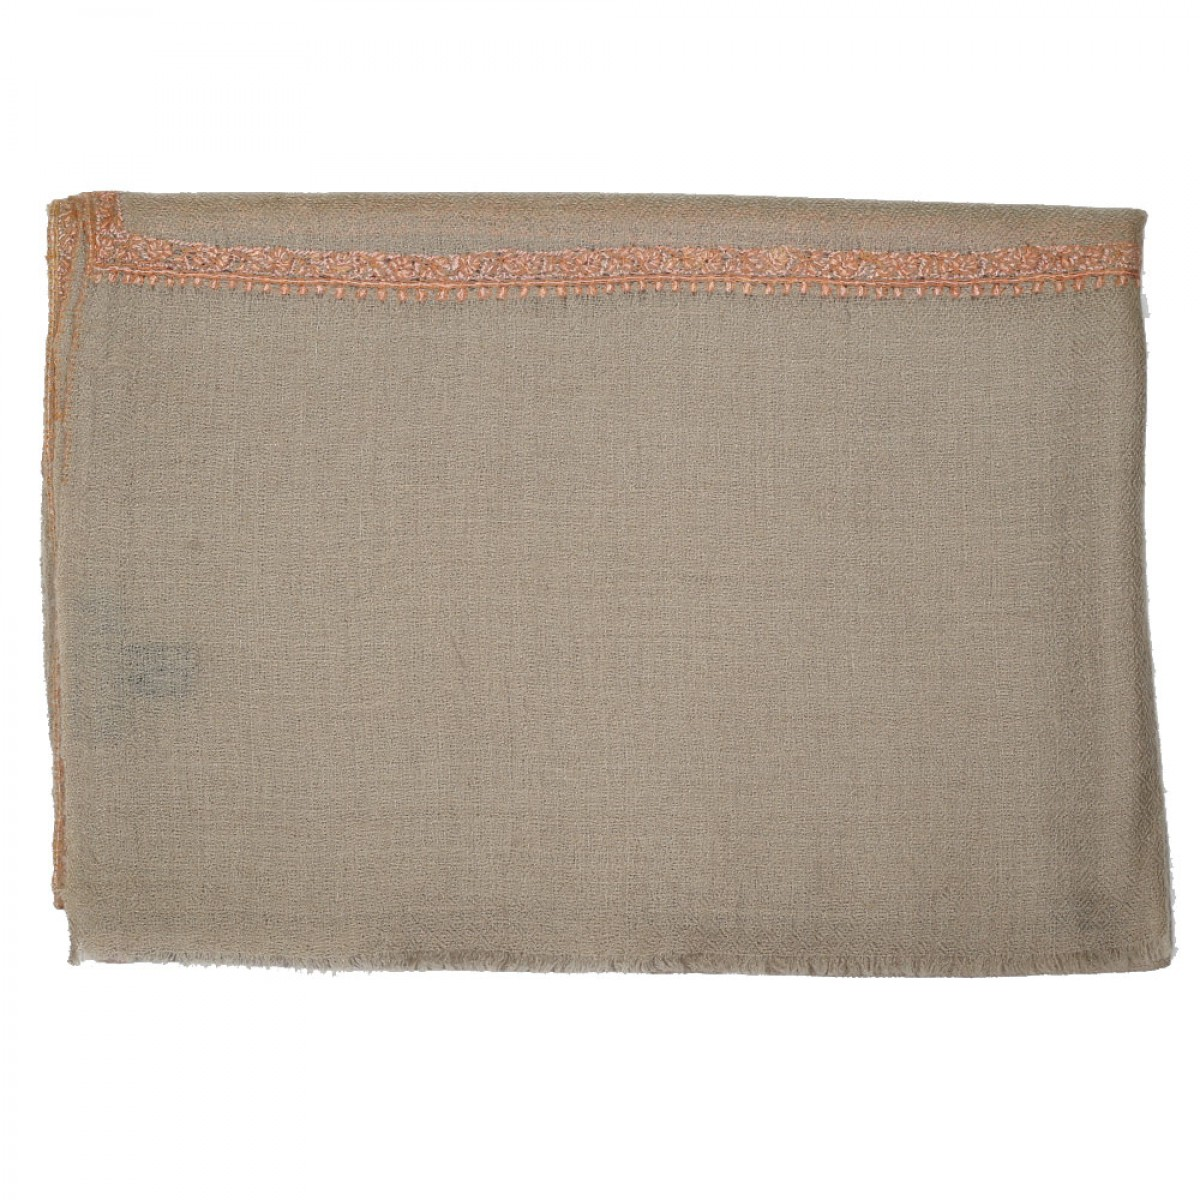 Embroidered Handloom Pashmina Stole - Natural Peach